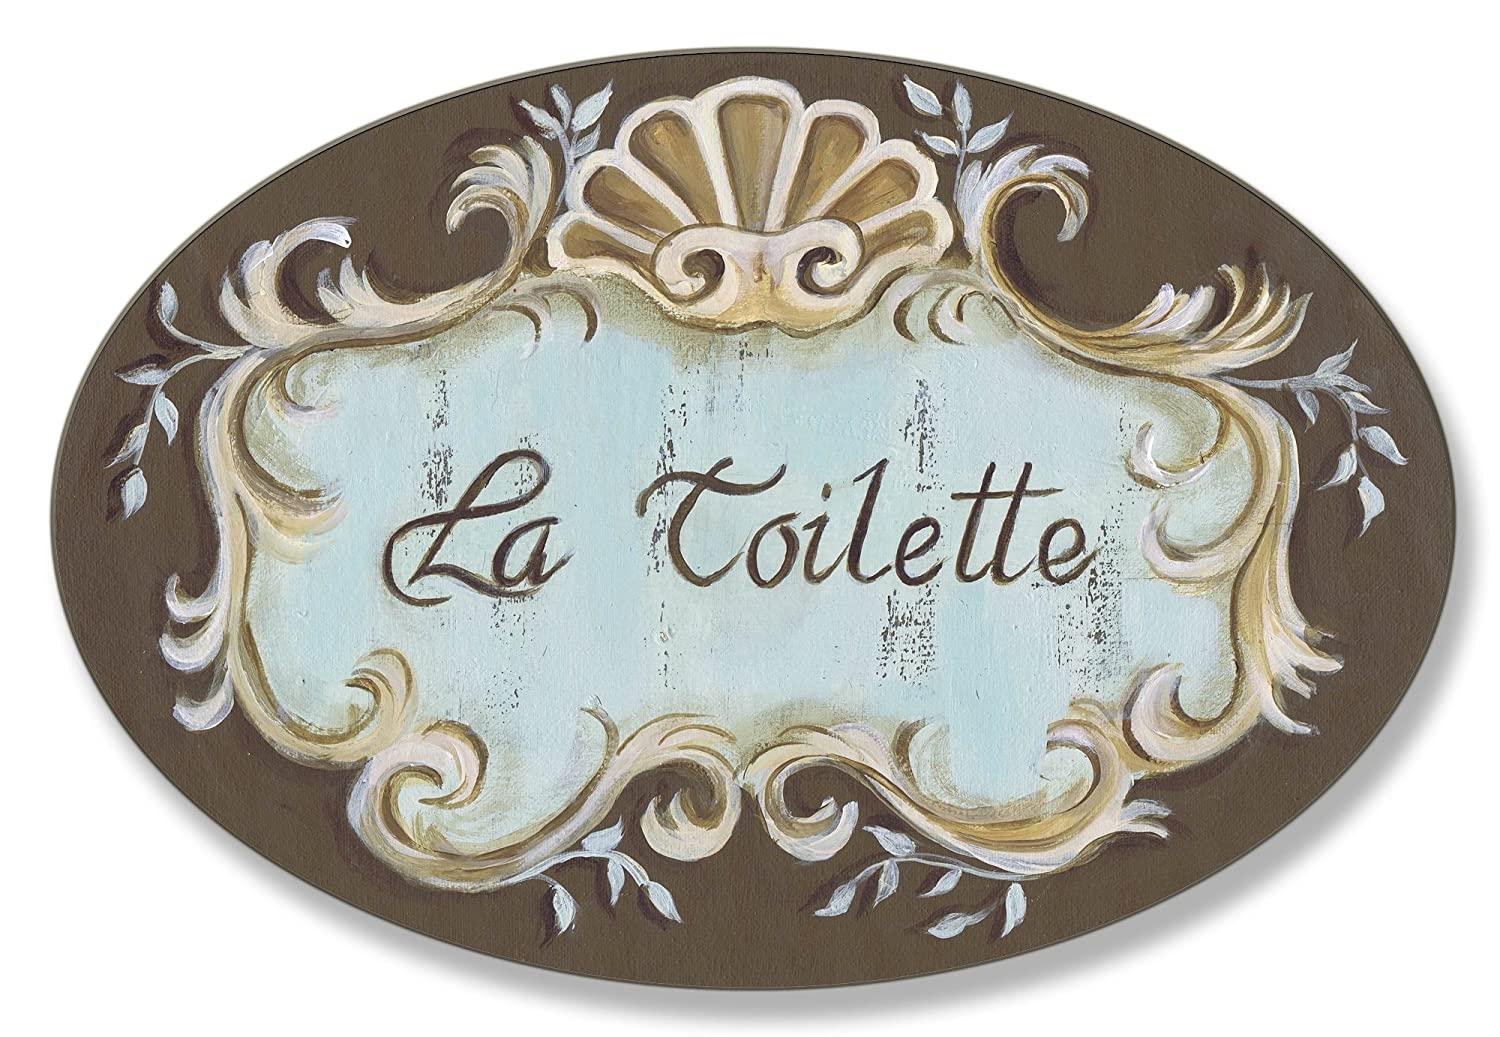 Stupell Home Décor La Toilette Aqua And Brown Scallop Shell Crest Oval Bathroom Wall Plaque, 10 x 0.5 x 15, Proudly Made in USA